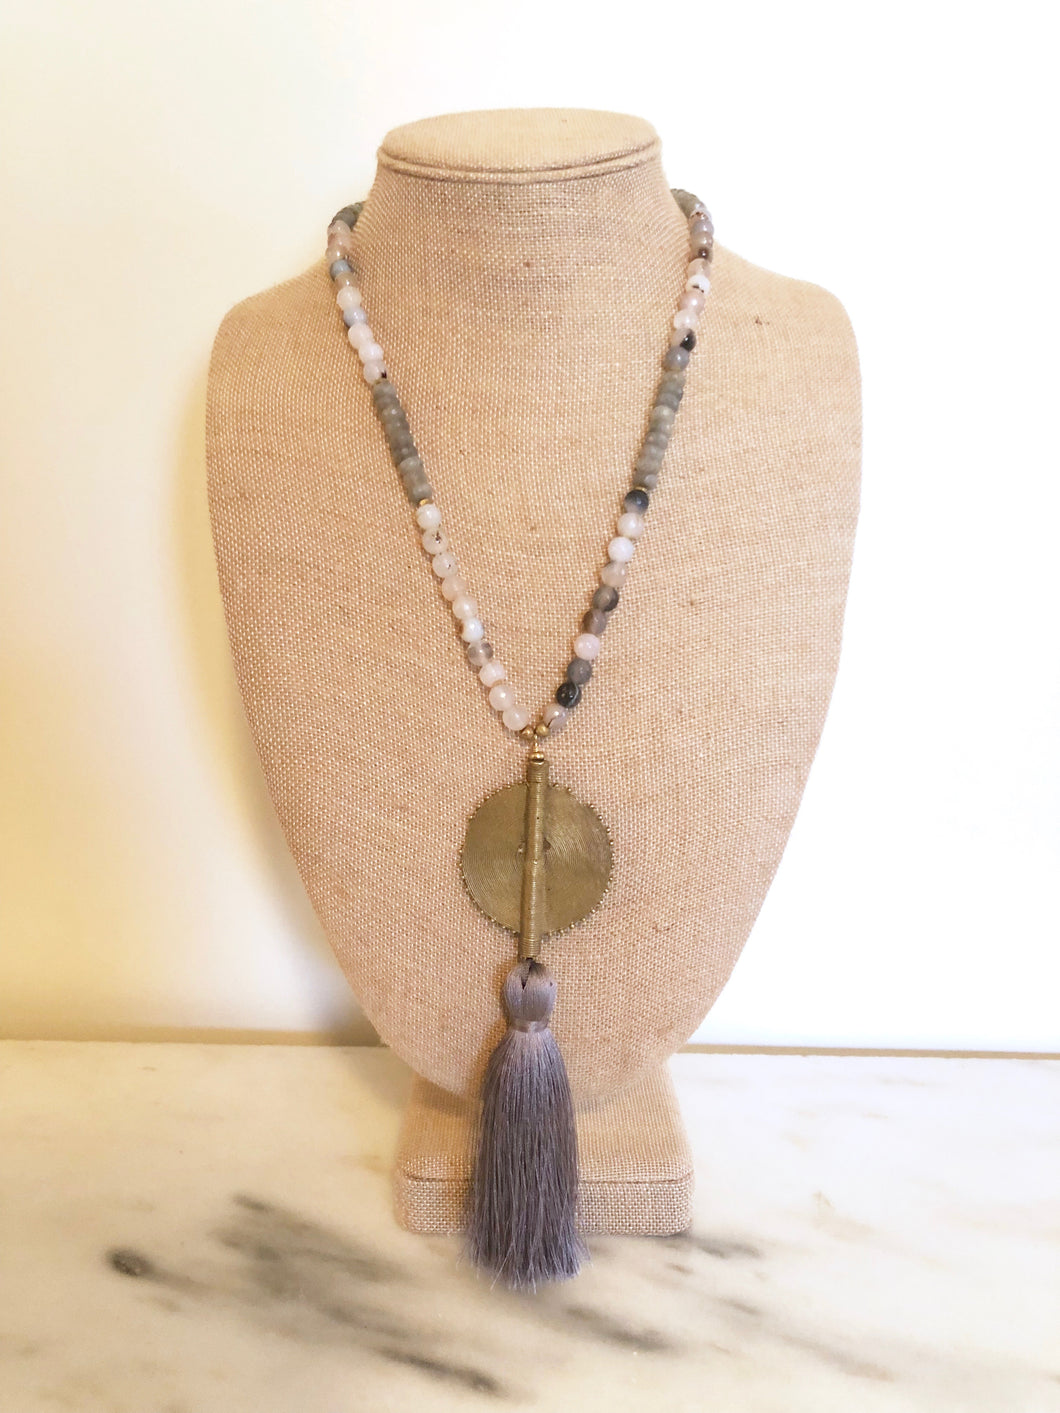 Gray Agate Beaded Necklace With Large Silky Tassel